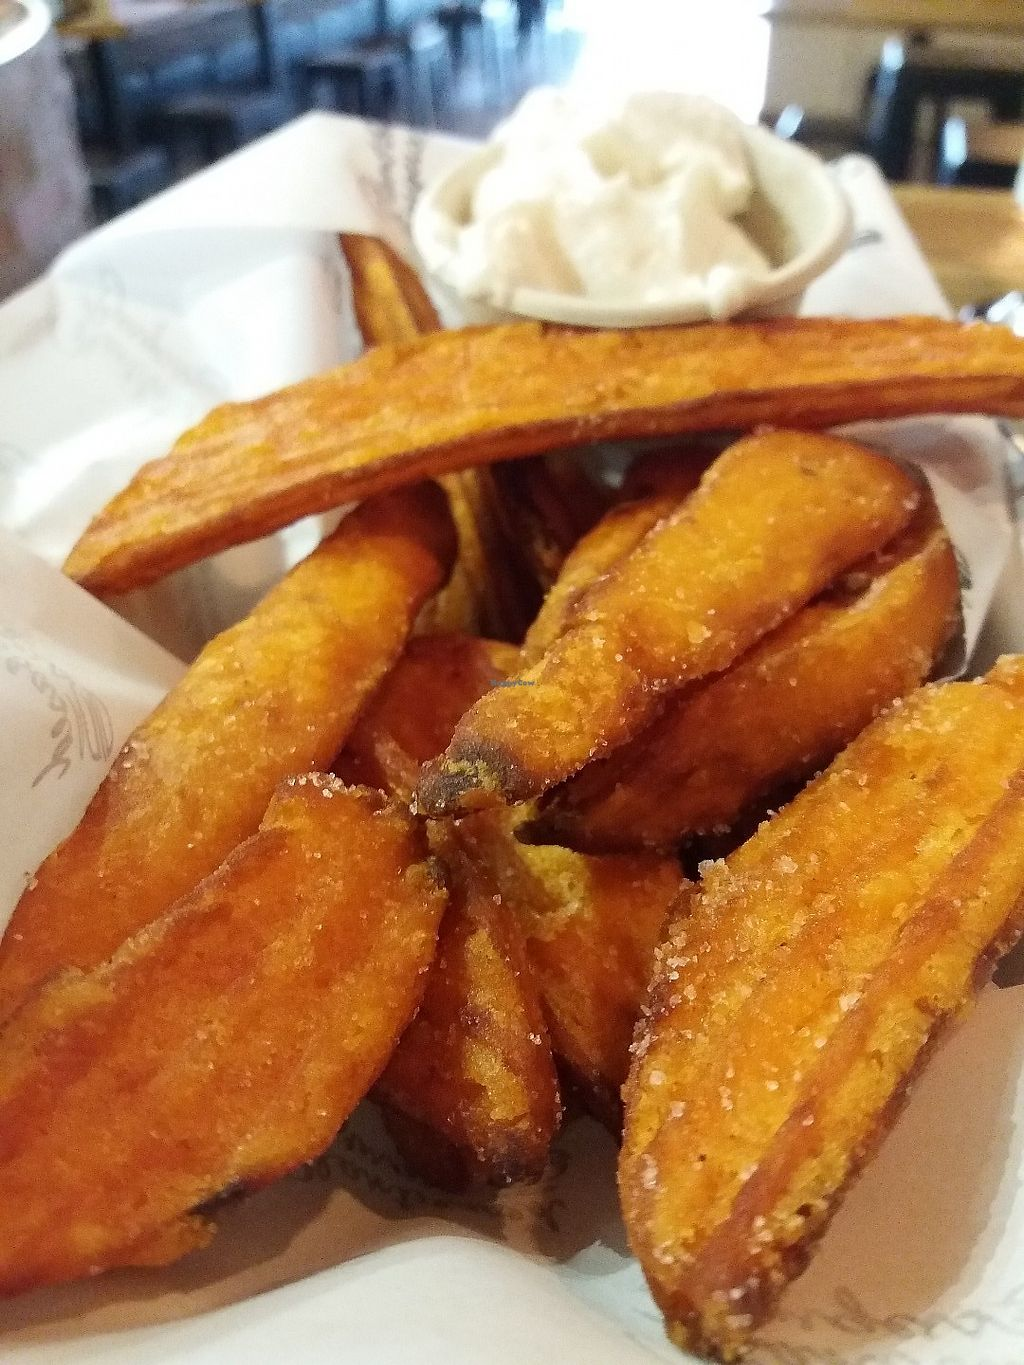 """Photo of Soul Burger  by <a href=""""/members/profile/veganvirtues"""">veganvirtues</a> <br/>Kumara Fries <br/> June 8, 2017  - <a href='/contact/abuse/image/92906/266844'>Report</a>"""